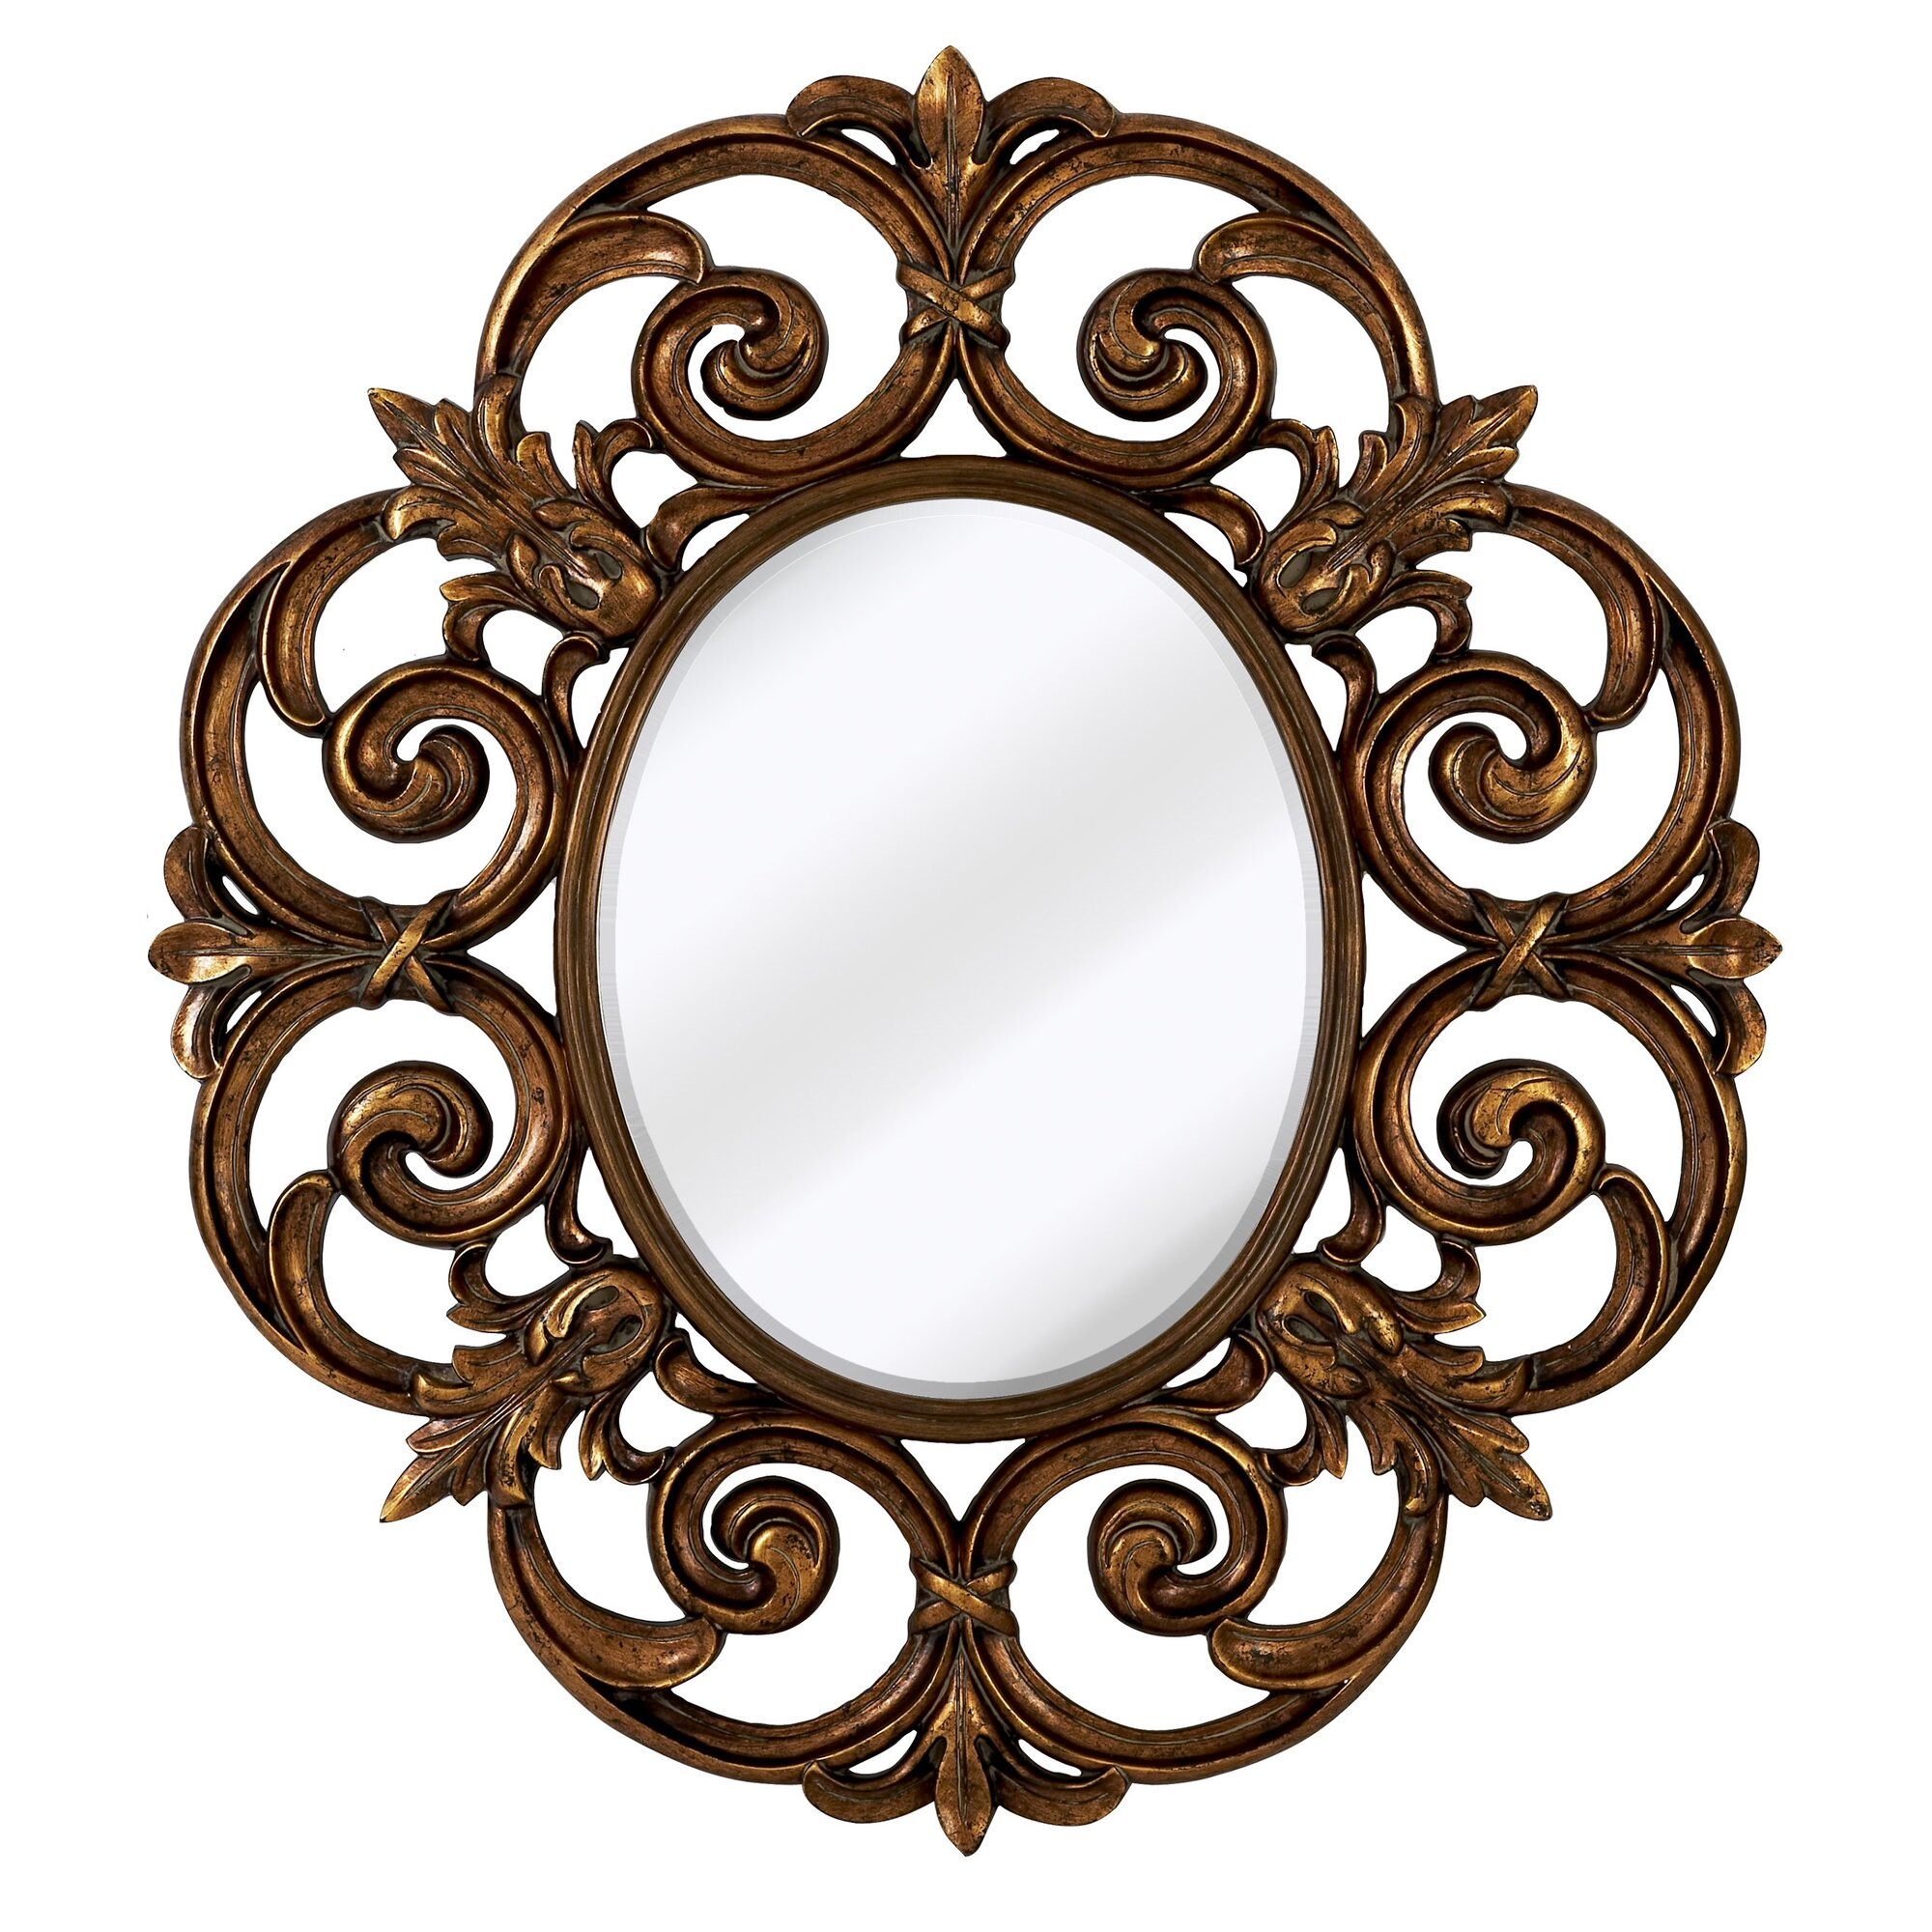 large traditional round decorative oval shaped beveled glass wall mirror - Round Decorative Mirror